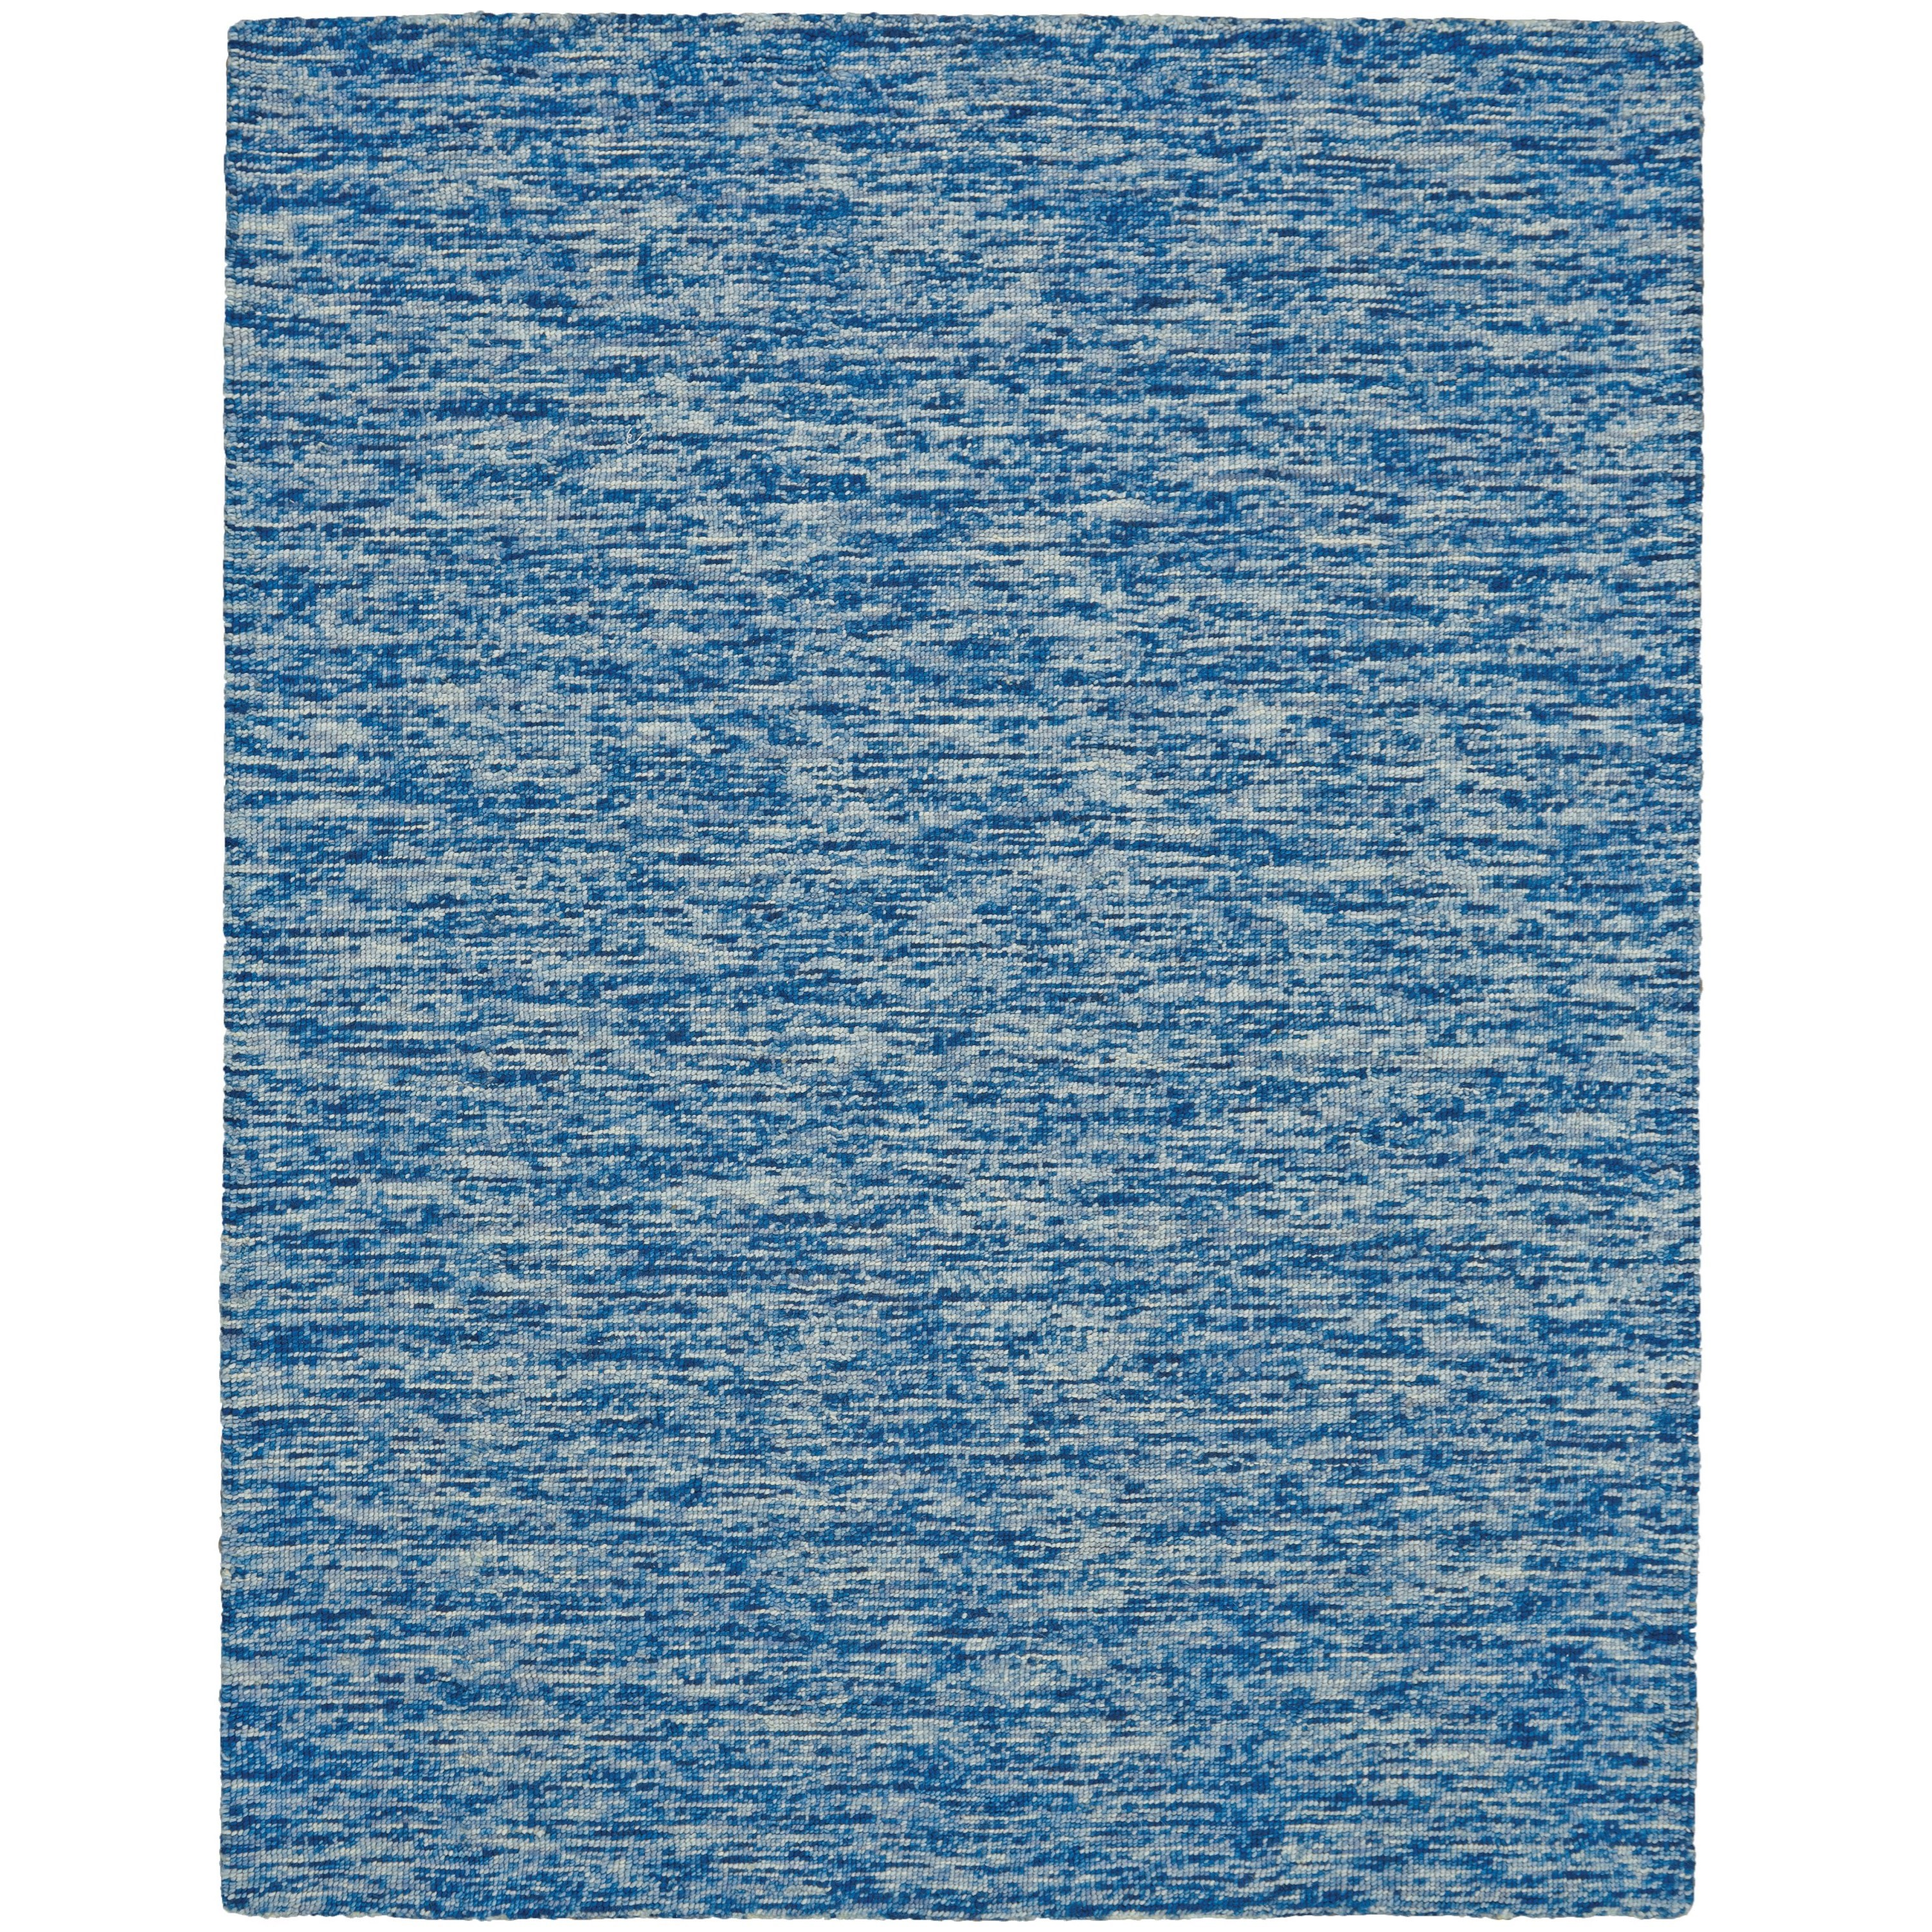 Cora Azure 8' X 11' Area Rug by Feizy Rugs at Jacksonville Furniture Mart